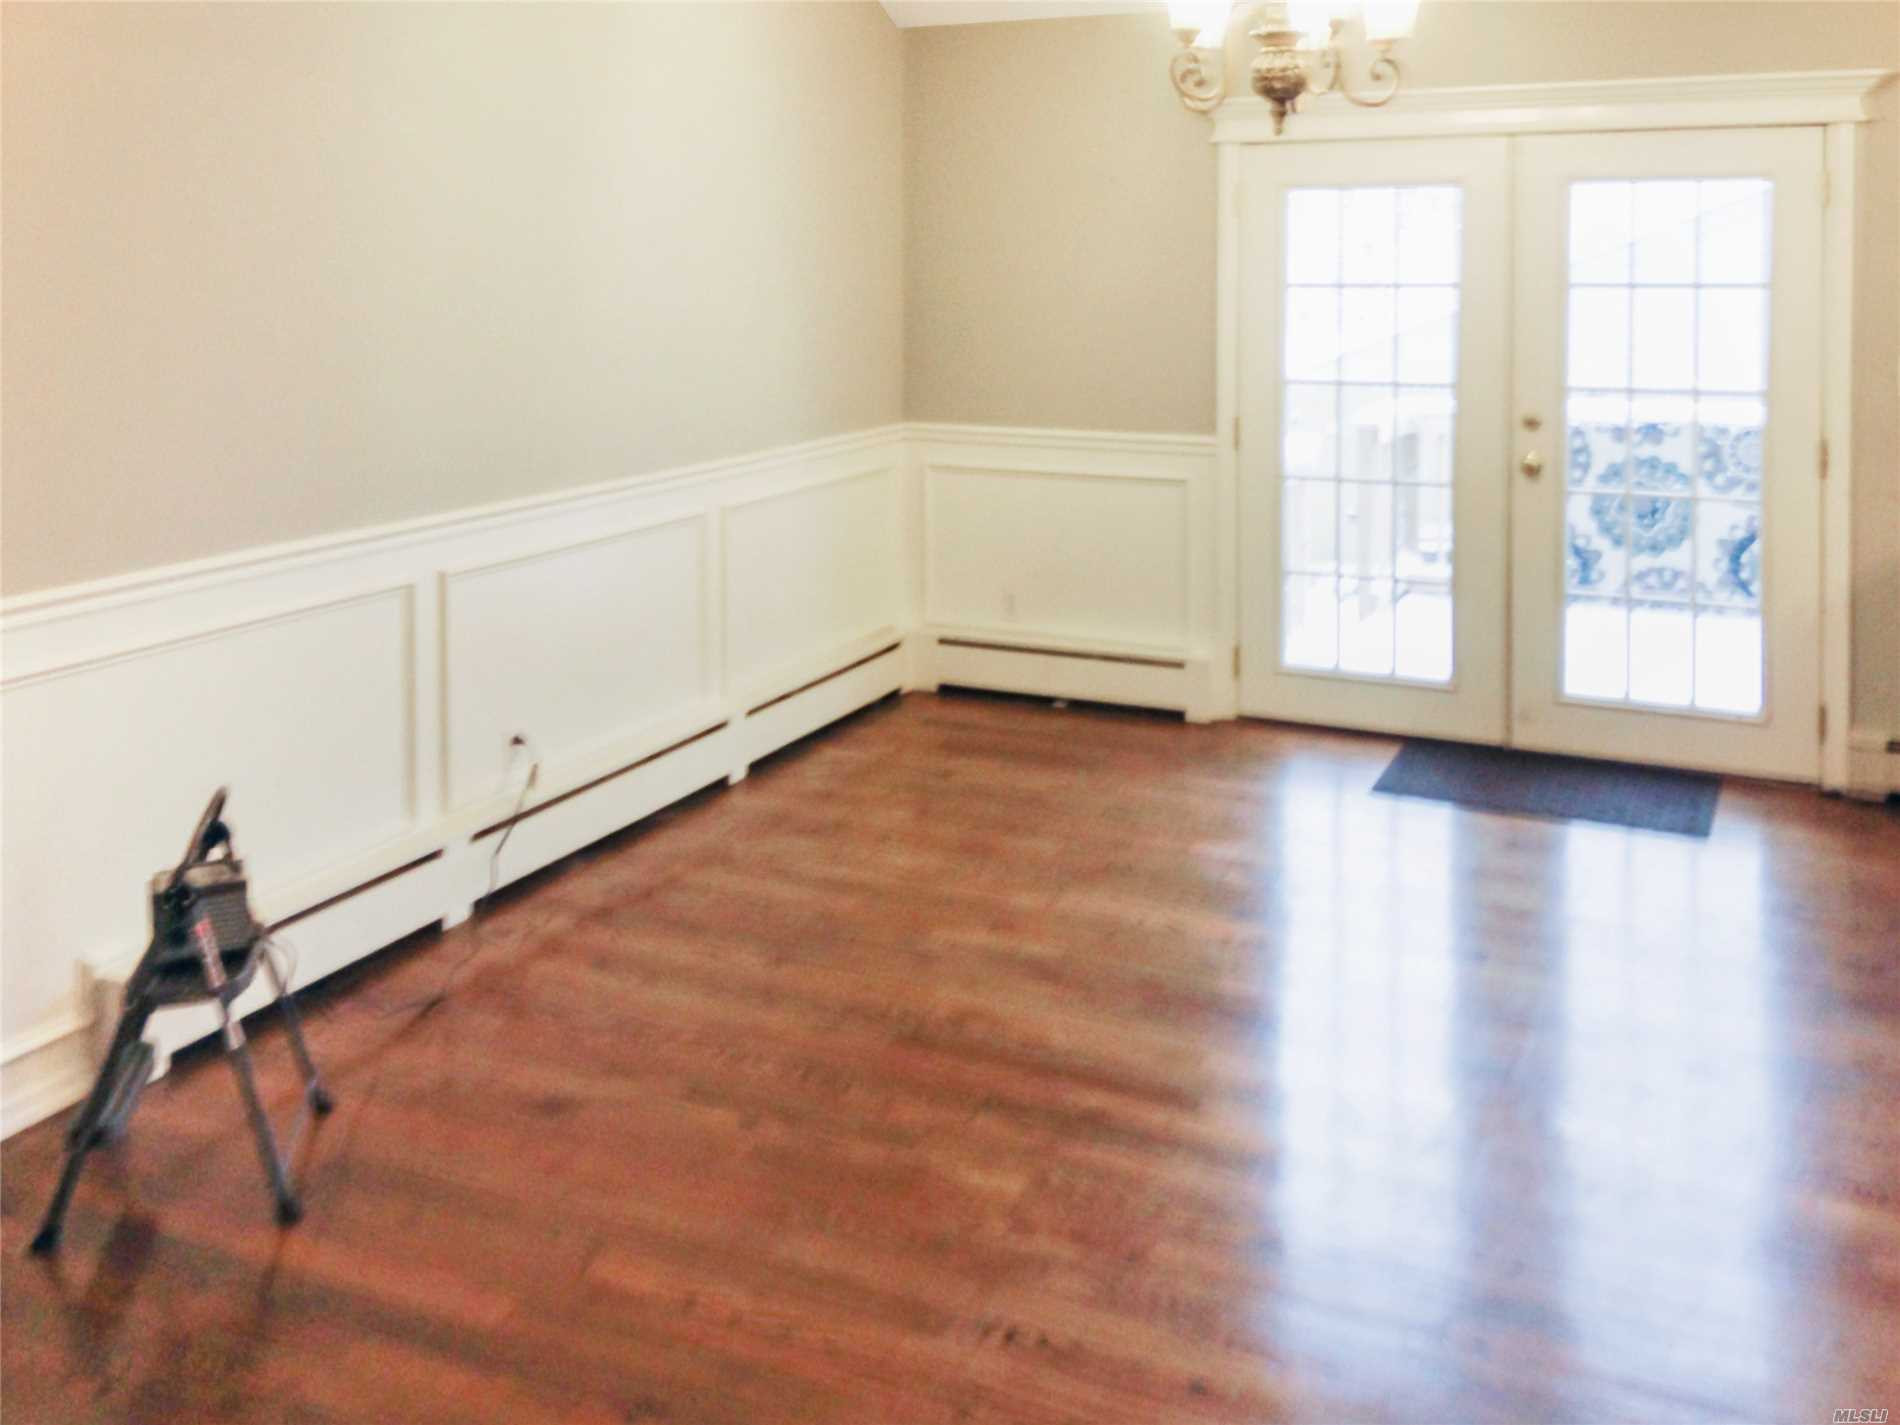 new england hardwood floors bridgeport ct of 406 bicycle path pt jefferson sta property listing mls 3033090 with regard to sold